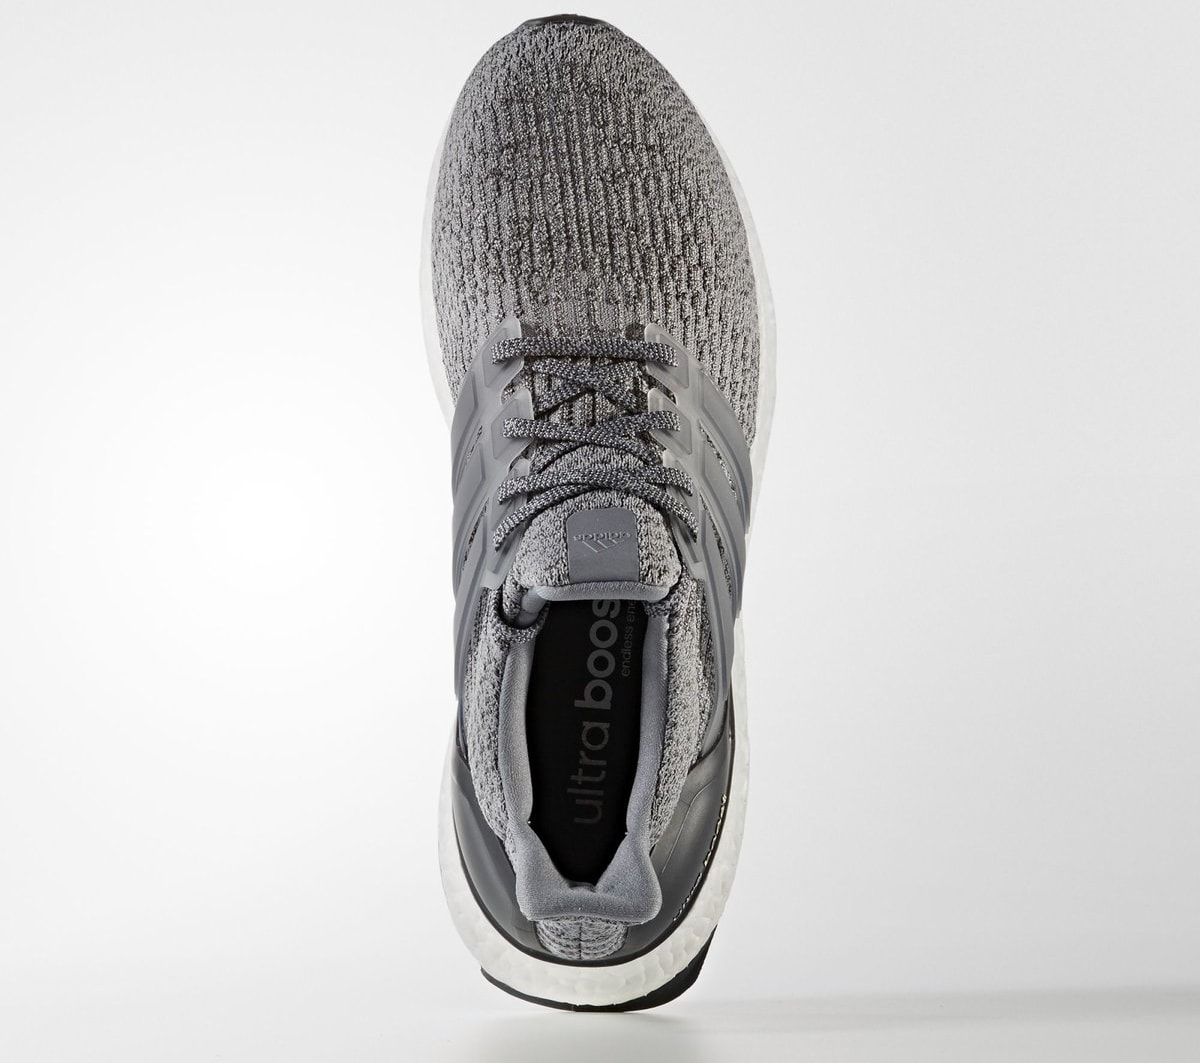 Foot Locker The Trace Cargo adidas Ultra Boost 3.0 drops